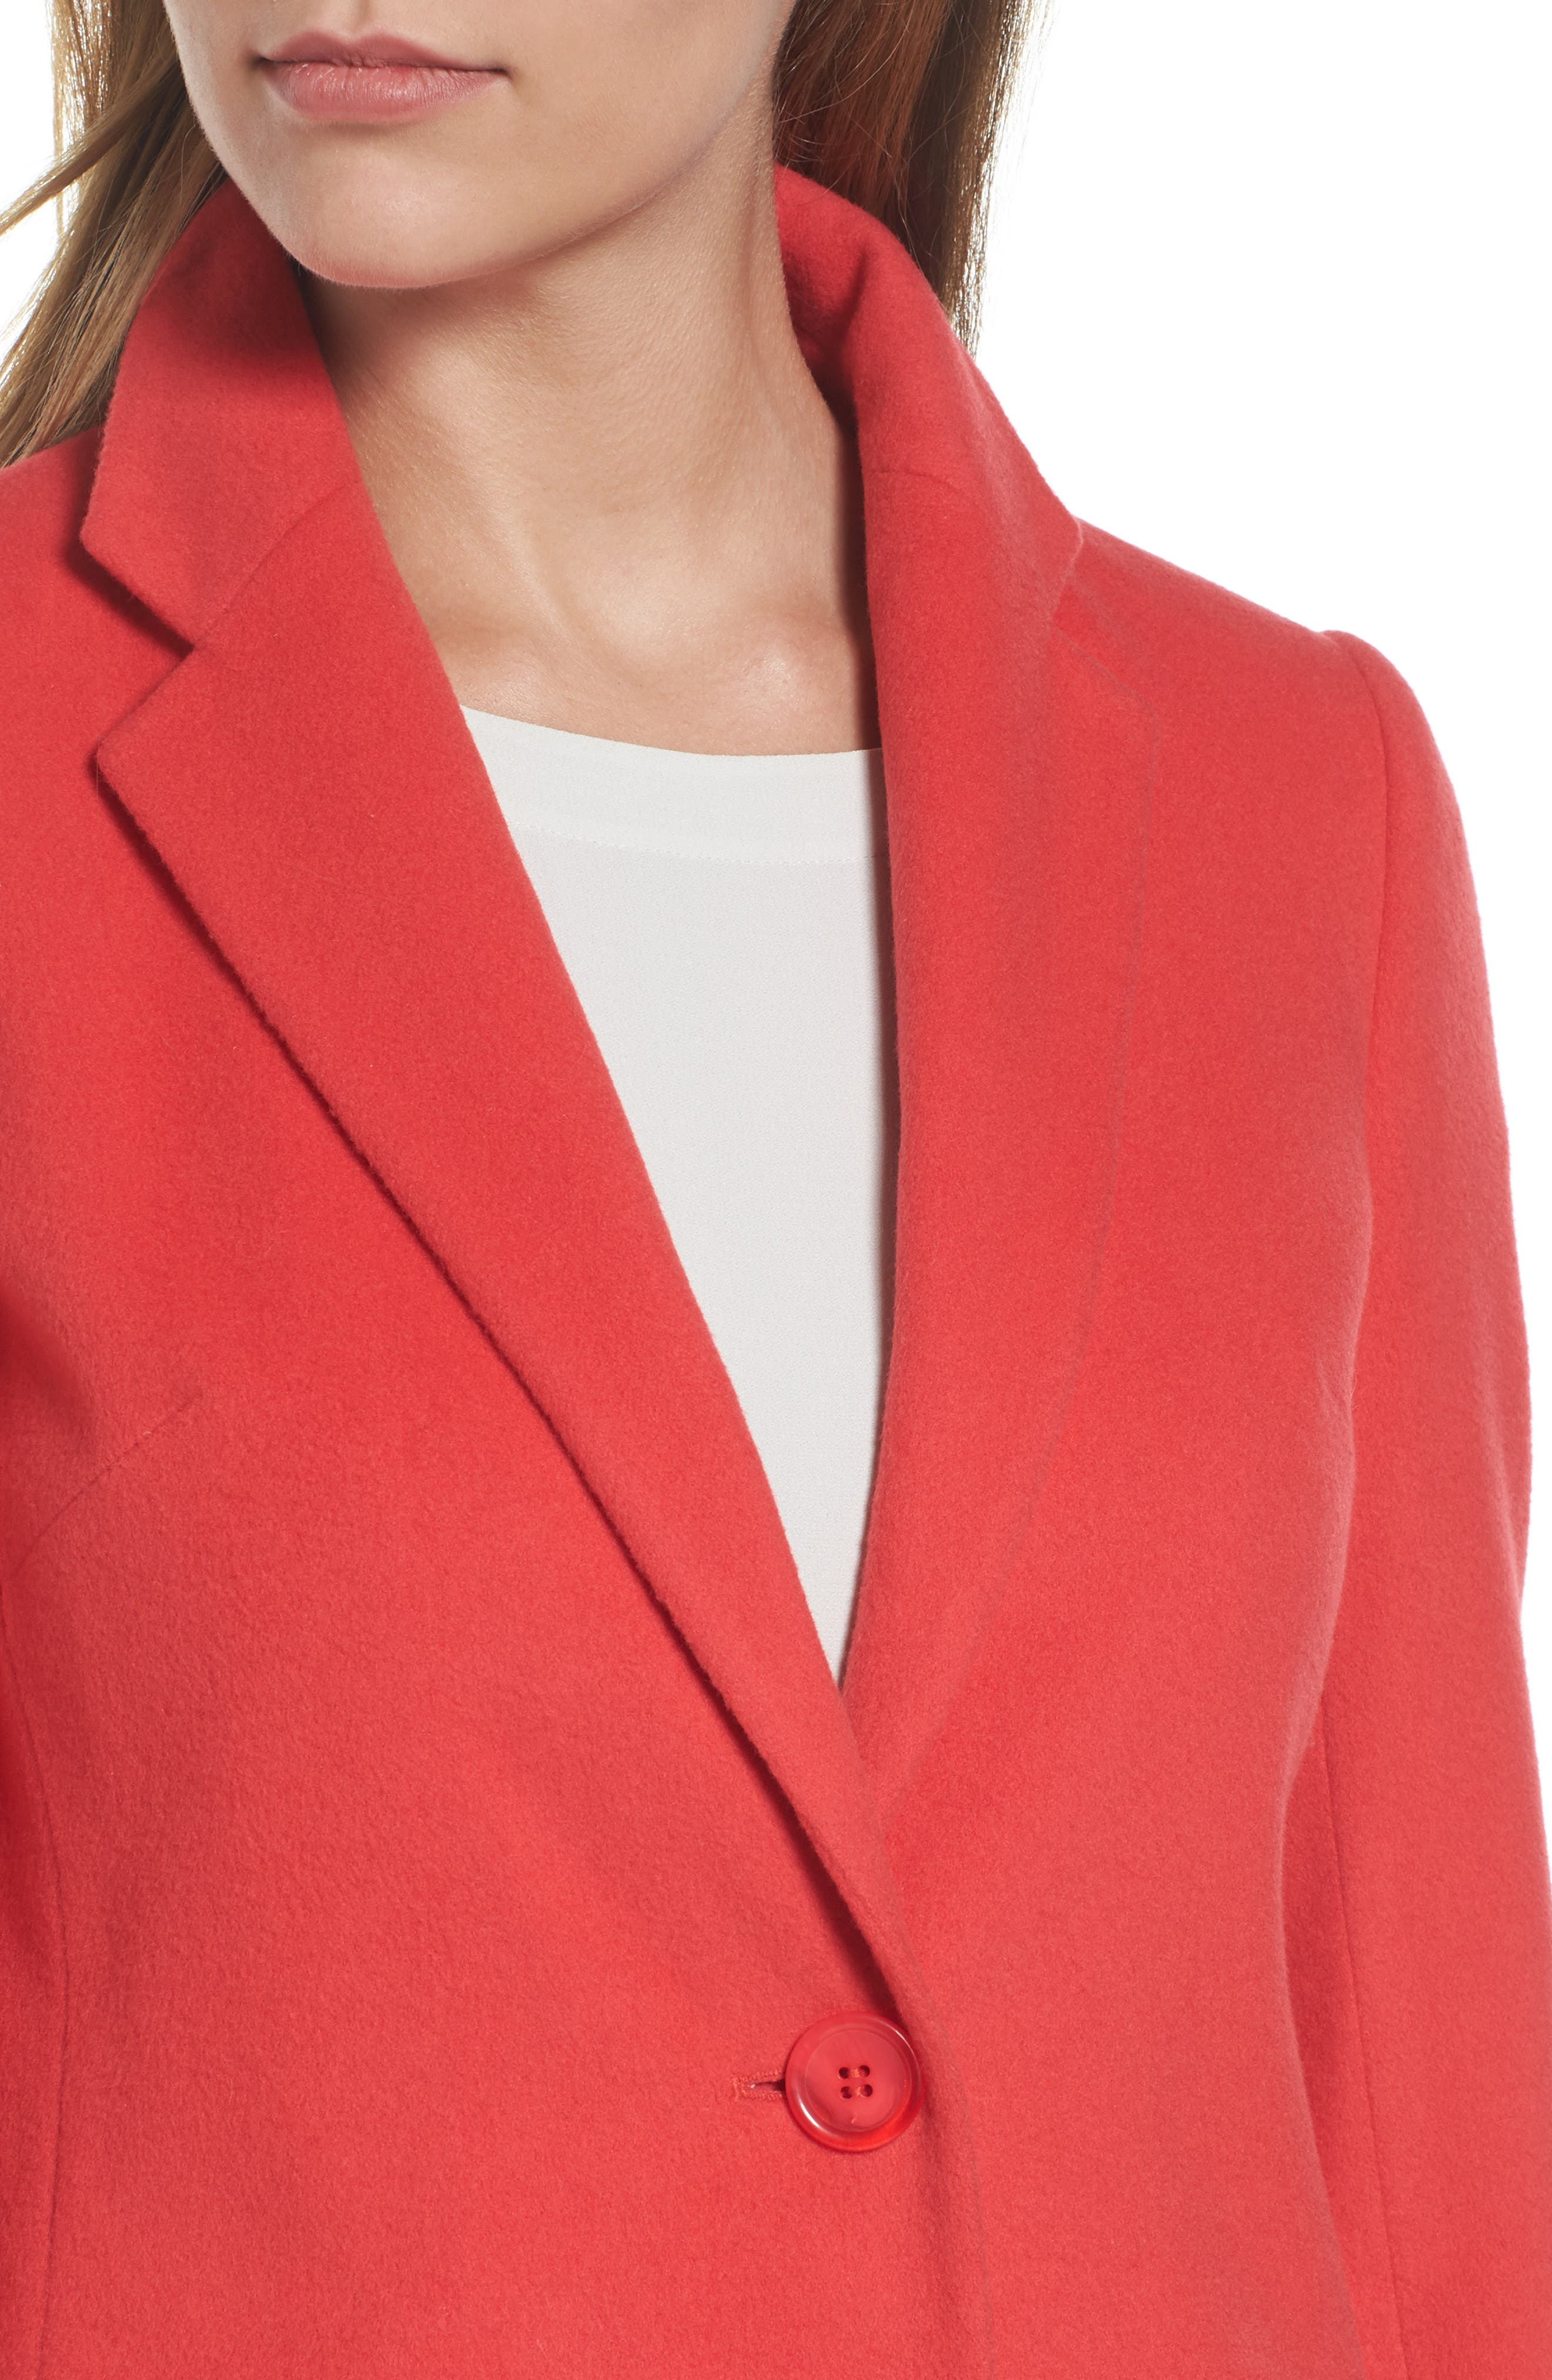 Charles Gray London Wool Blend College Coat,                             Alternate thumbnail 5, color,                             Coral